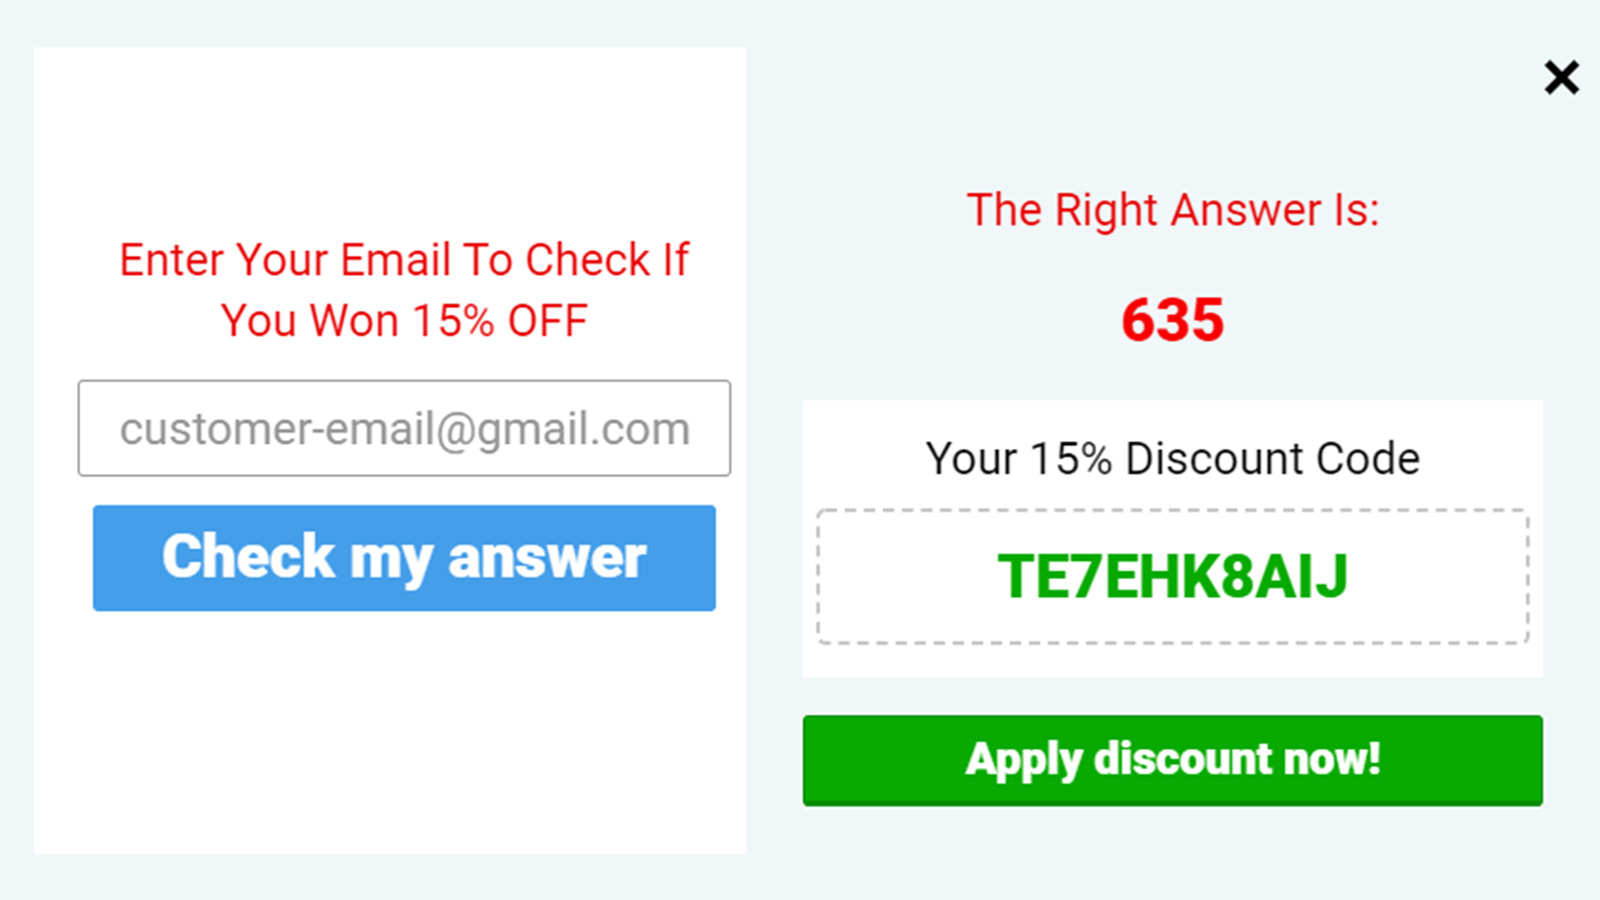 Collect customer emails and reward them with a coupon